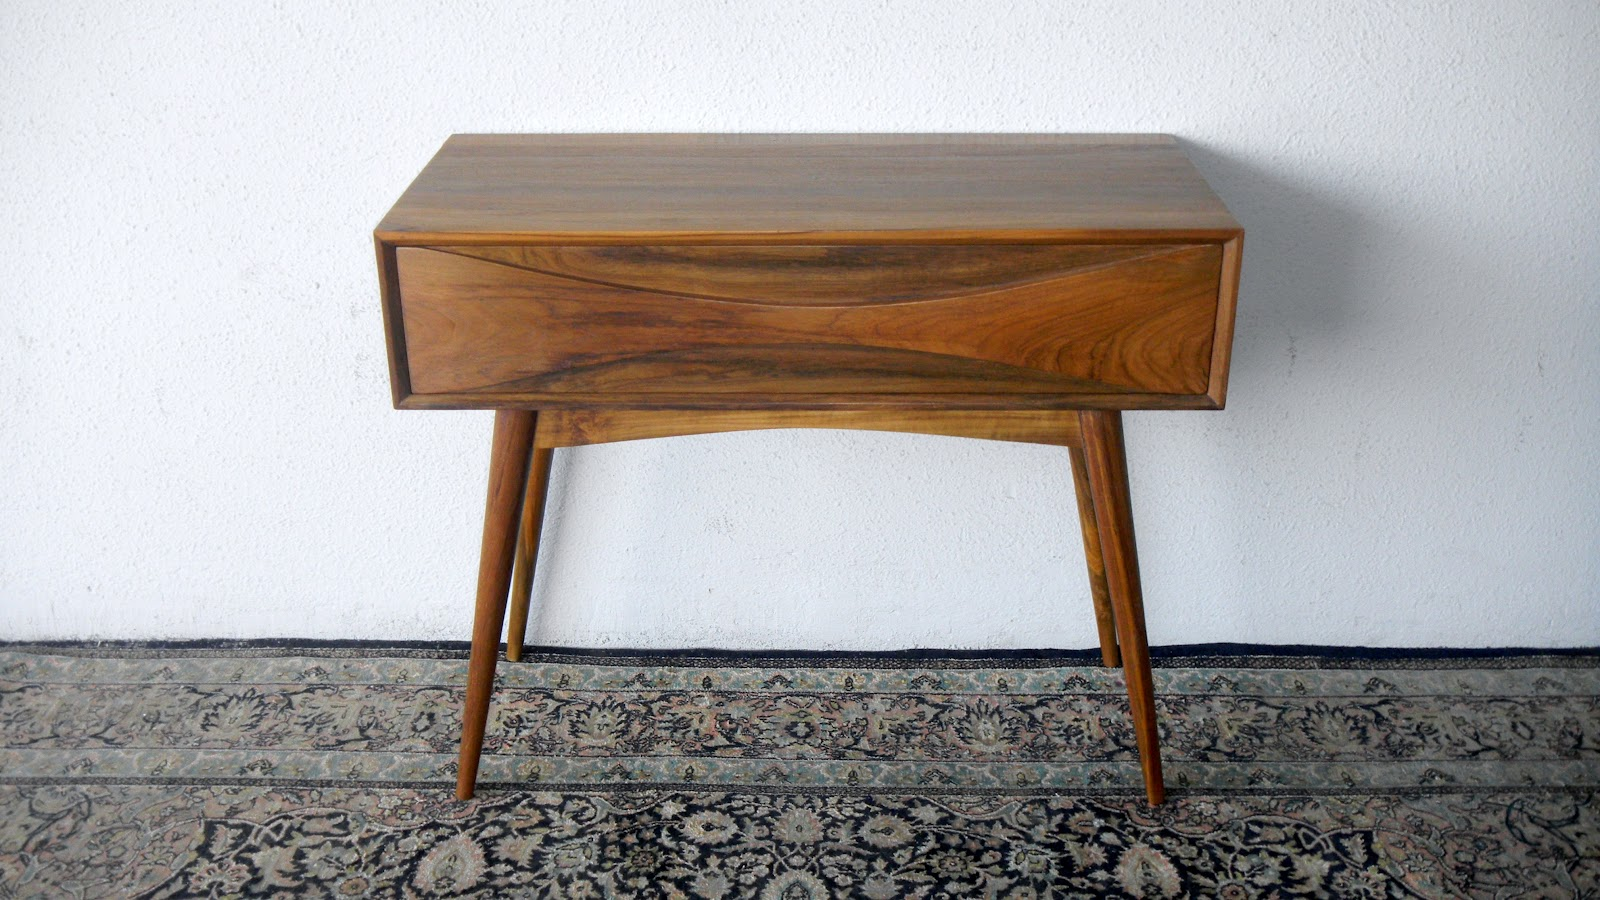 Make A Modern Side Table: MID CENTURY MODERN INSPIRED FURNITURE @ SECOND CHARM